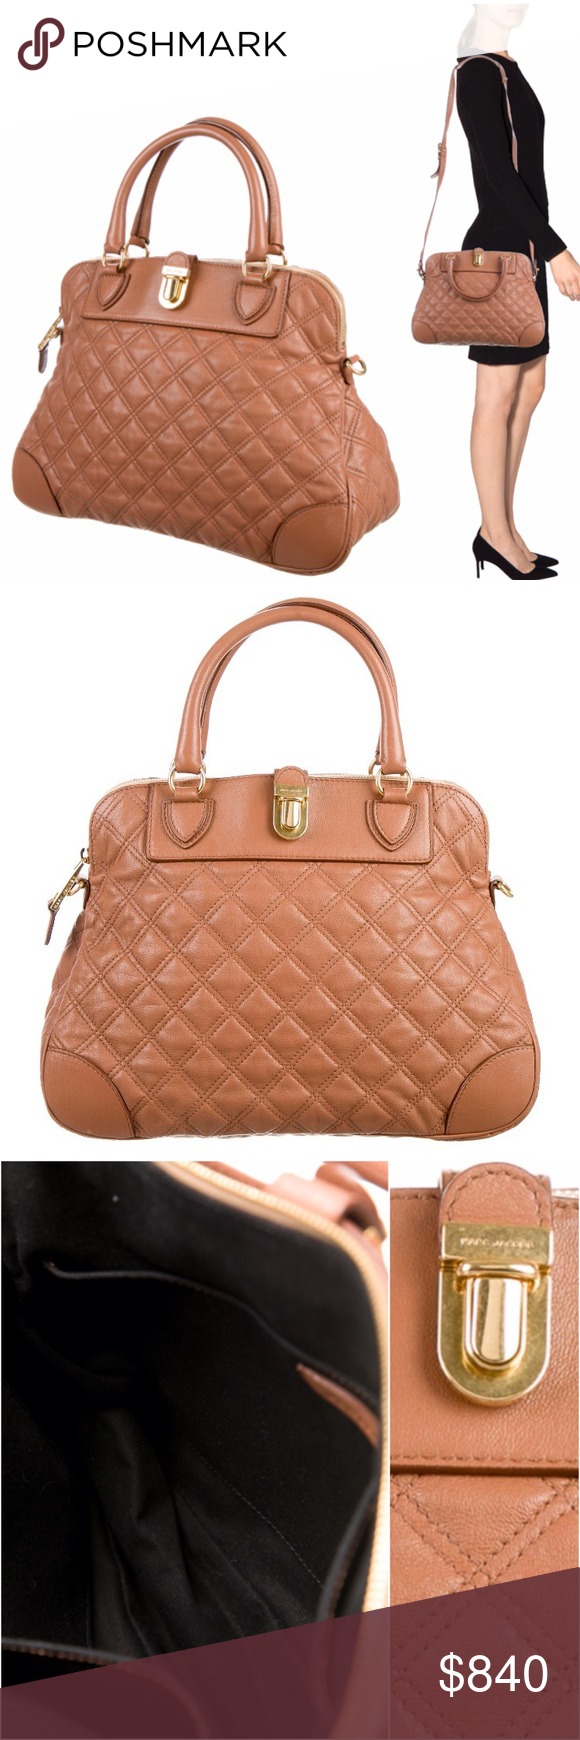 """Authentic Marc Jacobs Whitney Quilted Satchel Brown quilted leather Marc Jacobs Whitney bag w/ gold-tone hardware, optional shoulder strap, dual rolled handles, single pocket @ exterior w/ flap & magnetic snap closure, black canvas lining, dual slit pockets @ interior walls & zip closure @ top. Bag is hard to part with, but I'm gauging interest & thinking about it. All photos of actual bag listed. Strap Drop: 22"""" Handle Drop: 5"""" H: 10"""" W: 14"""" D: 5"""" Condition: very faint wear @ corners…"""